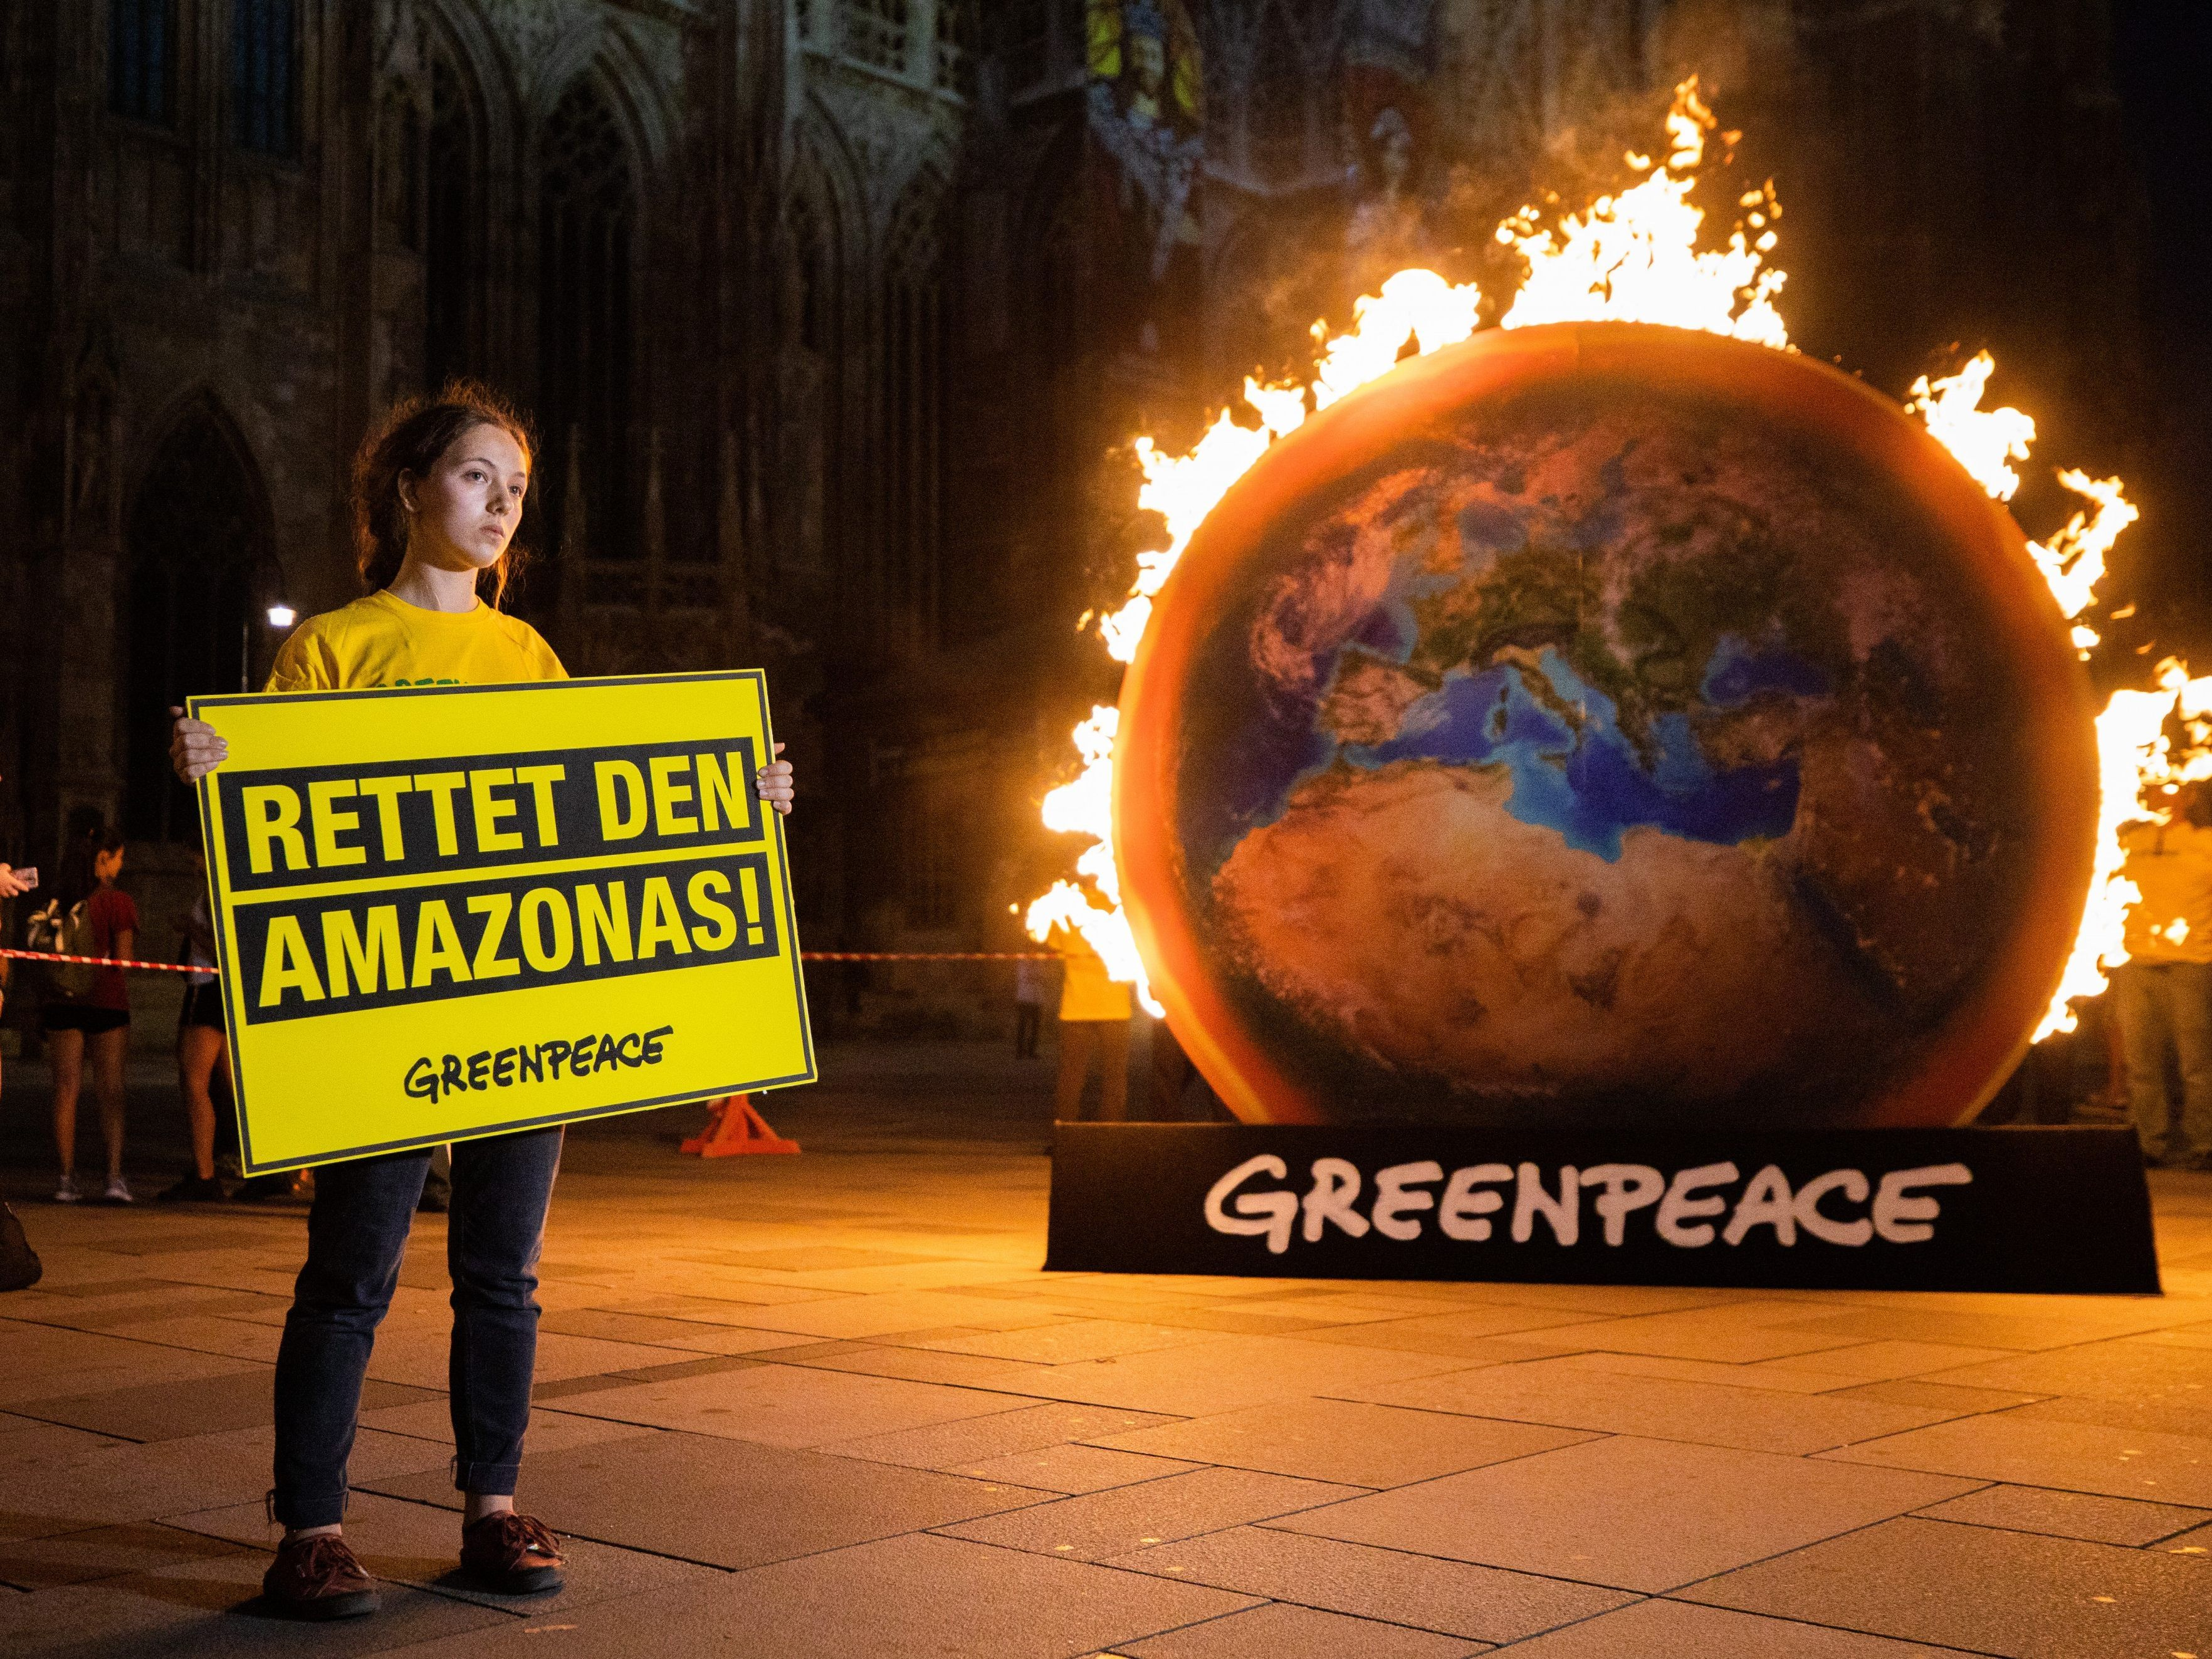 Greenpeace demonstrierte am Montagabend am Wiener Stephansplatz.